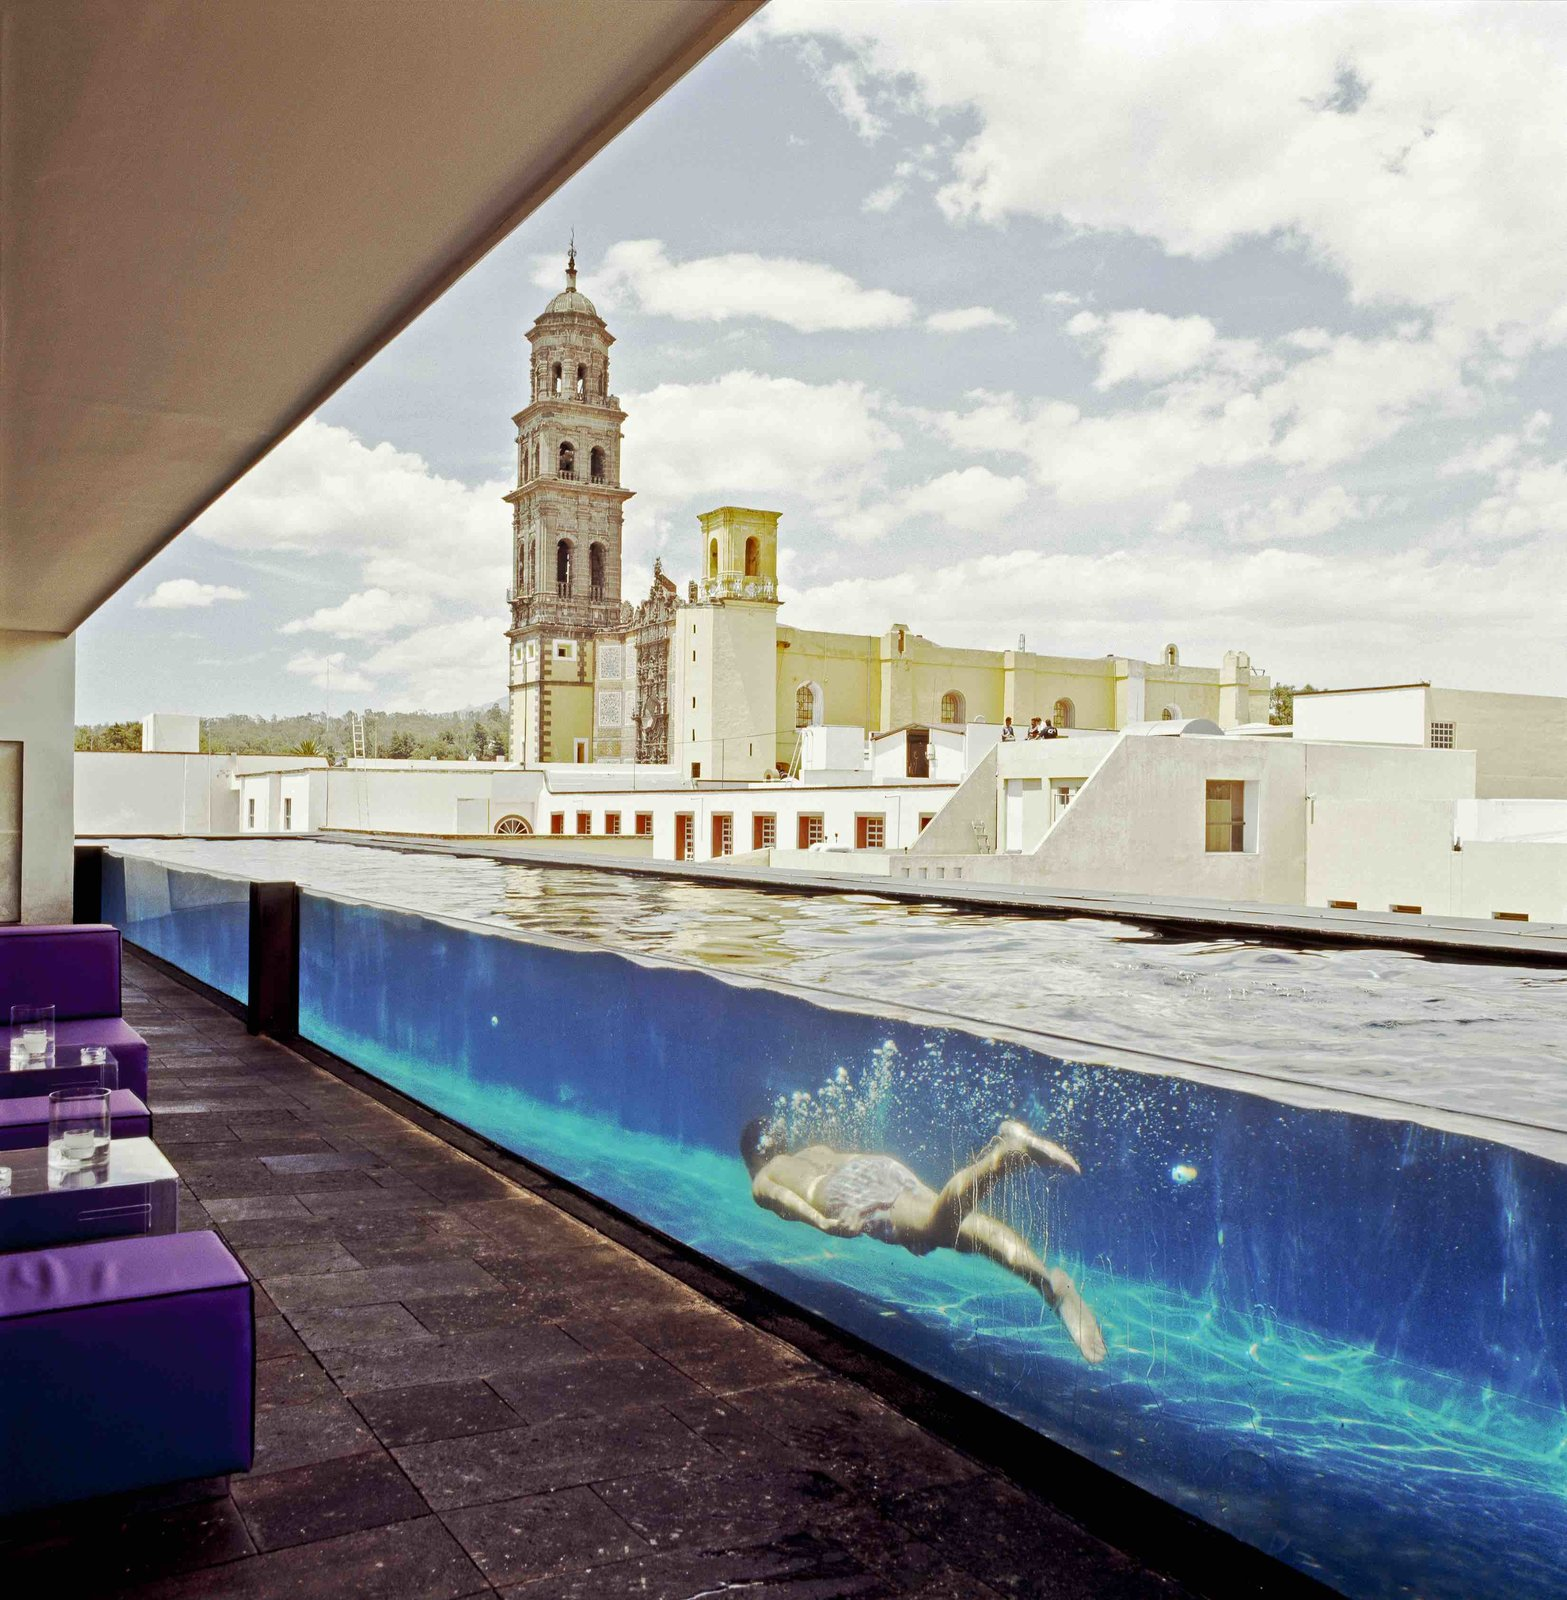 Modern furniture harmonizes with the old stone columns and walls of a former 19th century water purification factory in this Puebla boutique hotel. Archeological finds such as bottles and glass fragments for the old factory were incorporated into the interior design.